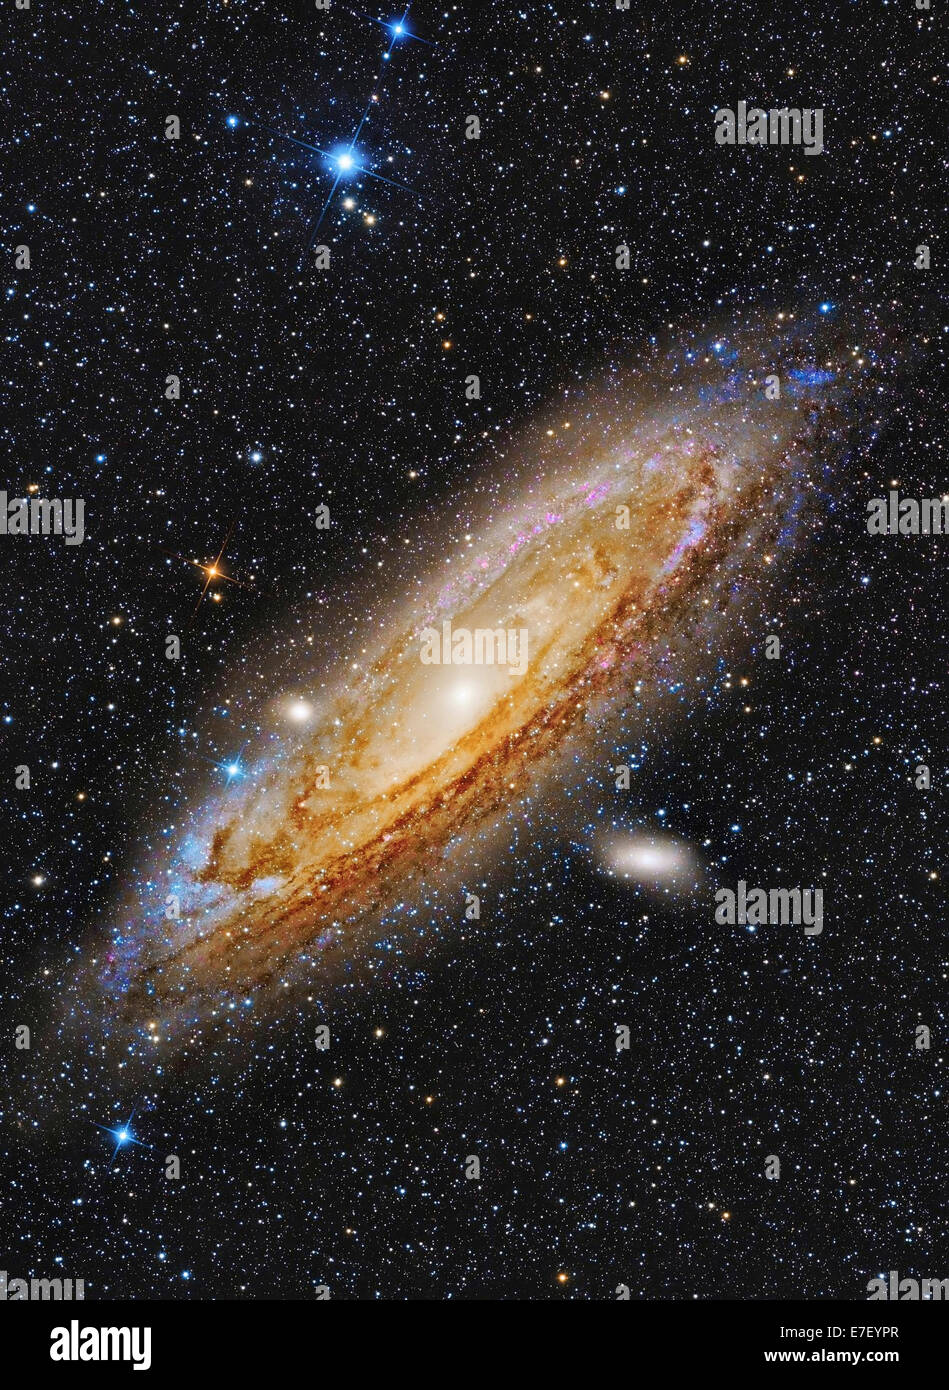 Messier 31, the Andromeda Galaxy. - Stock Image